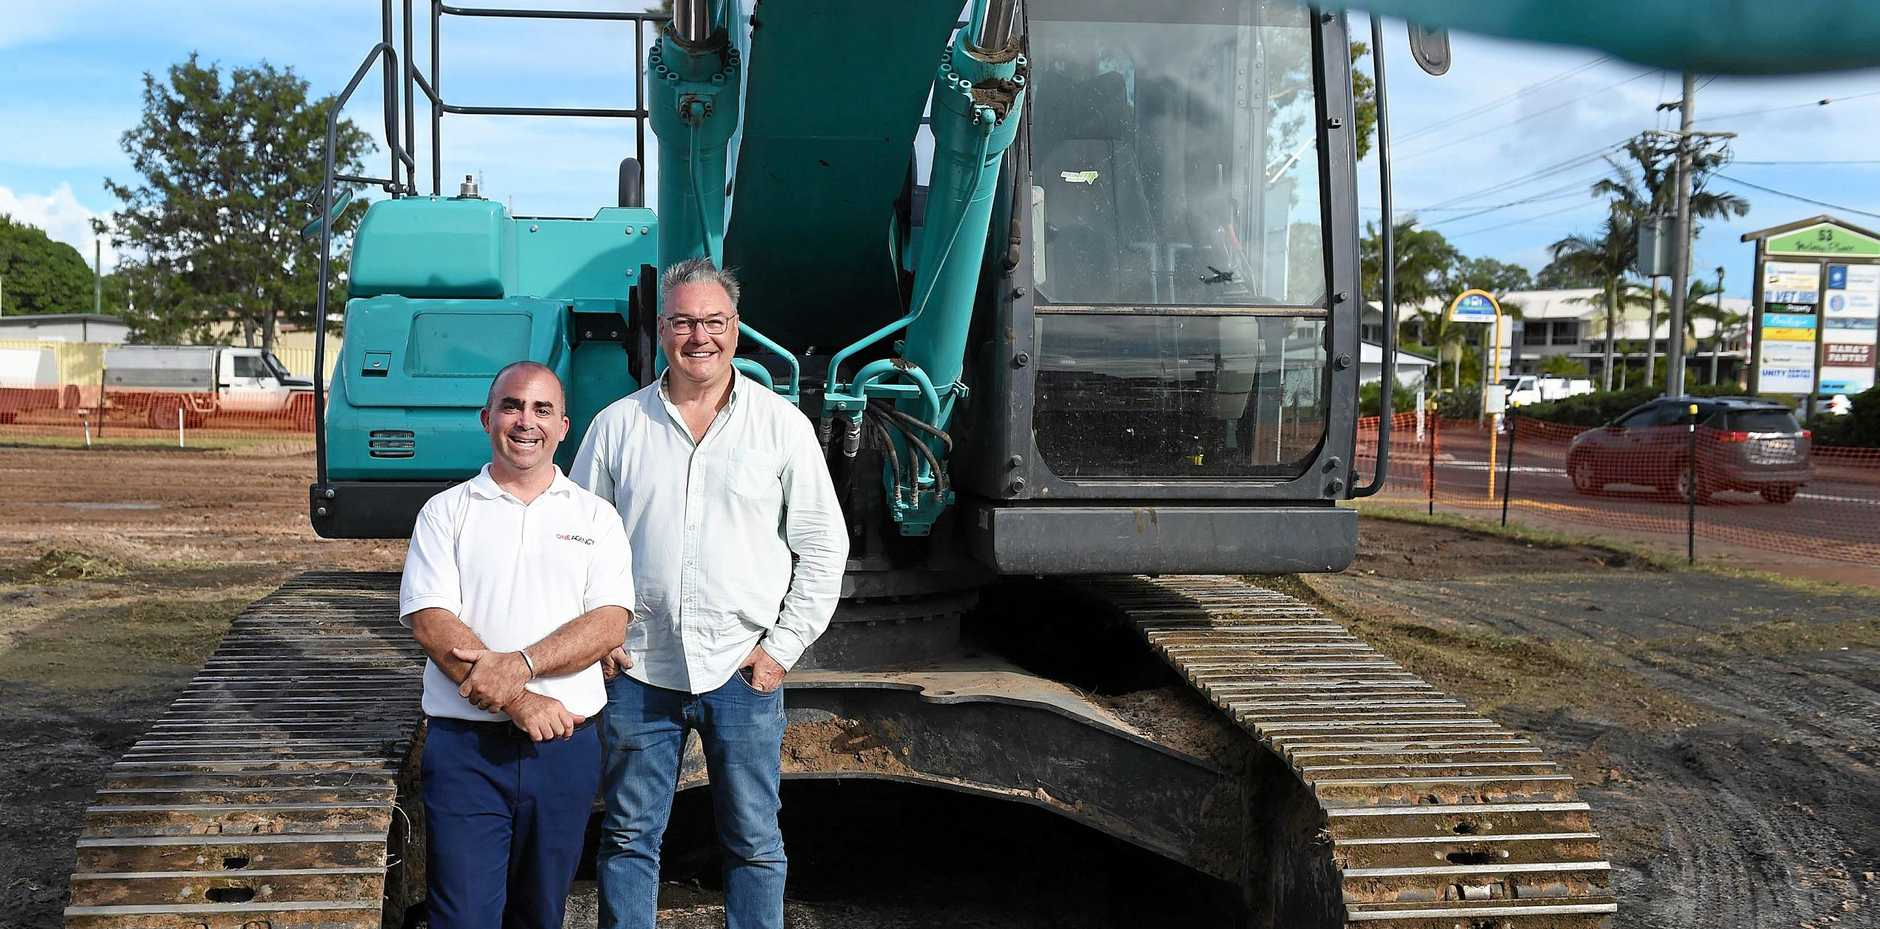 One Agency Hervey Bay owner Damian Raxach and PIA developer Alan Winney on site of The Avenue - a $10 million office development expected to be completed by August.